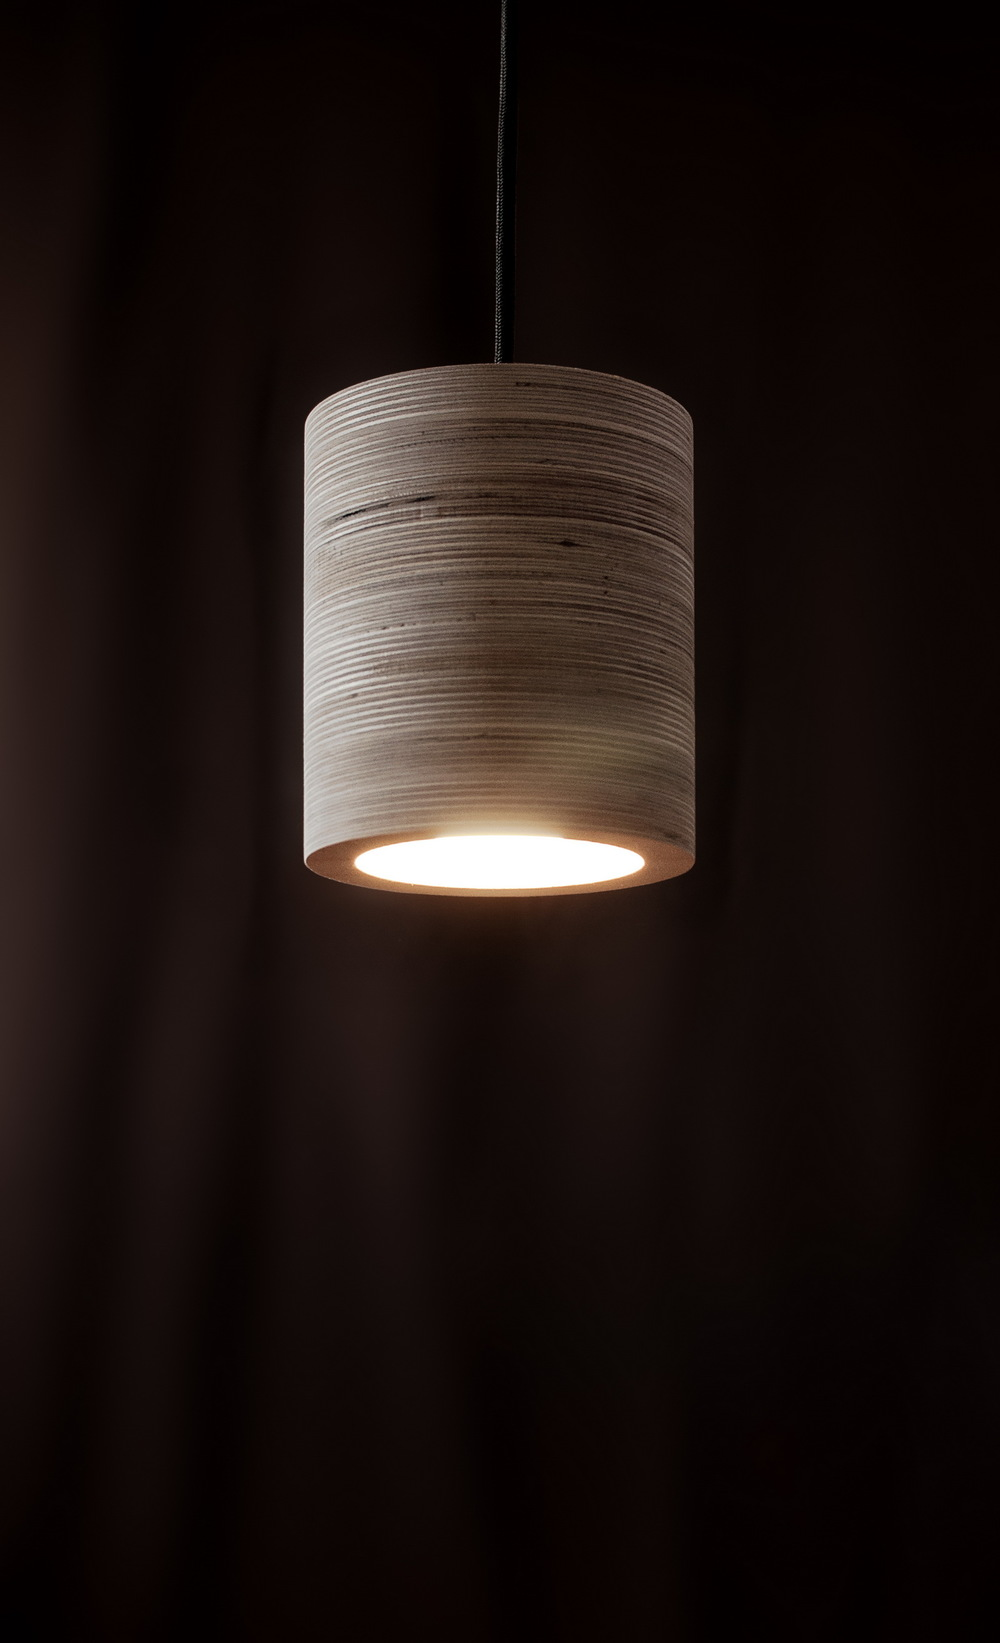 plywood lighting. Dimensions, Mm: 136d X 162h \u2013 Material: Plywood Socket: E27 Light Emitter: LED, 10W Max Cord Length: 1,5 M Weight: 1 Kg Lighting